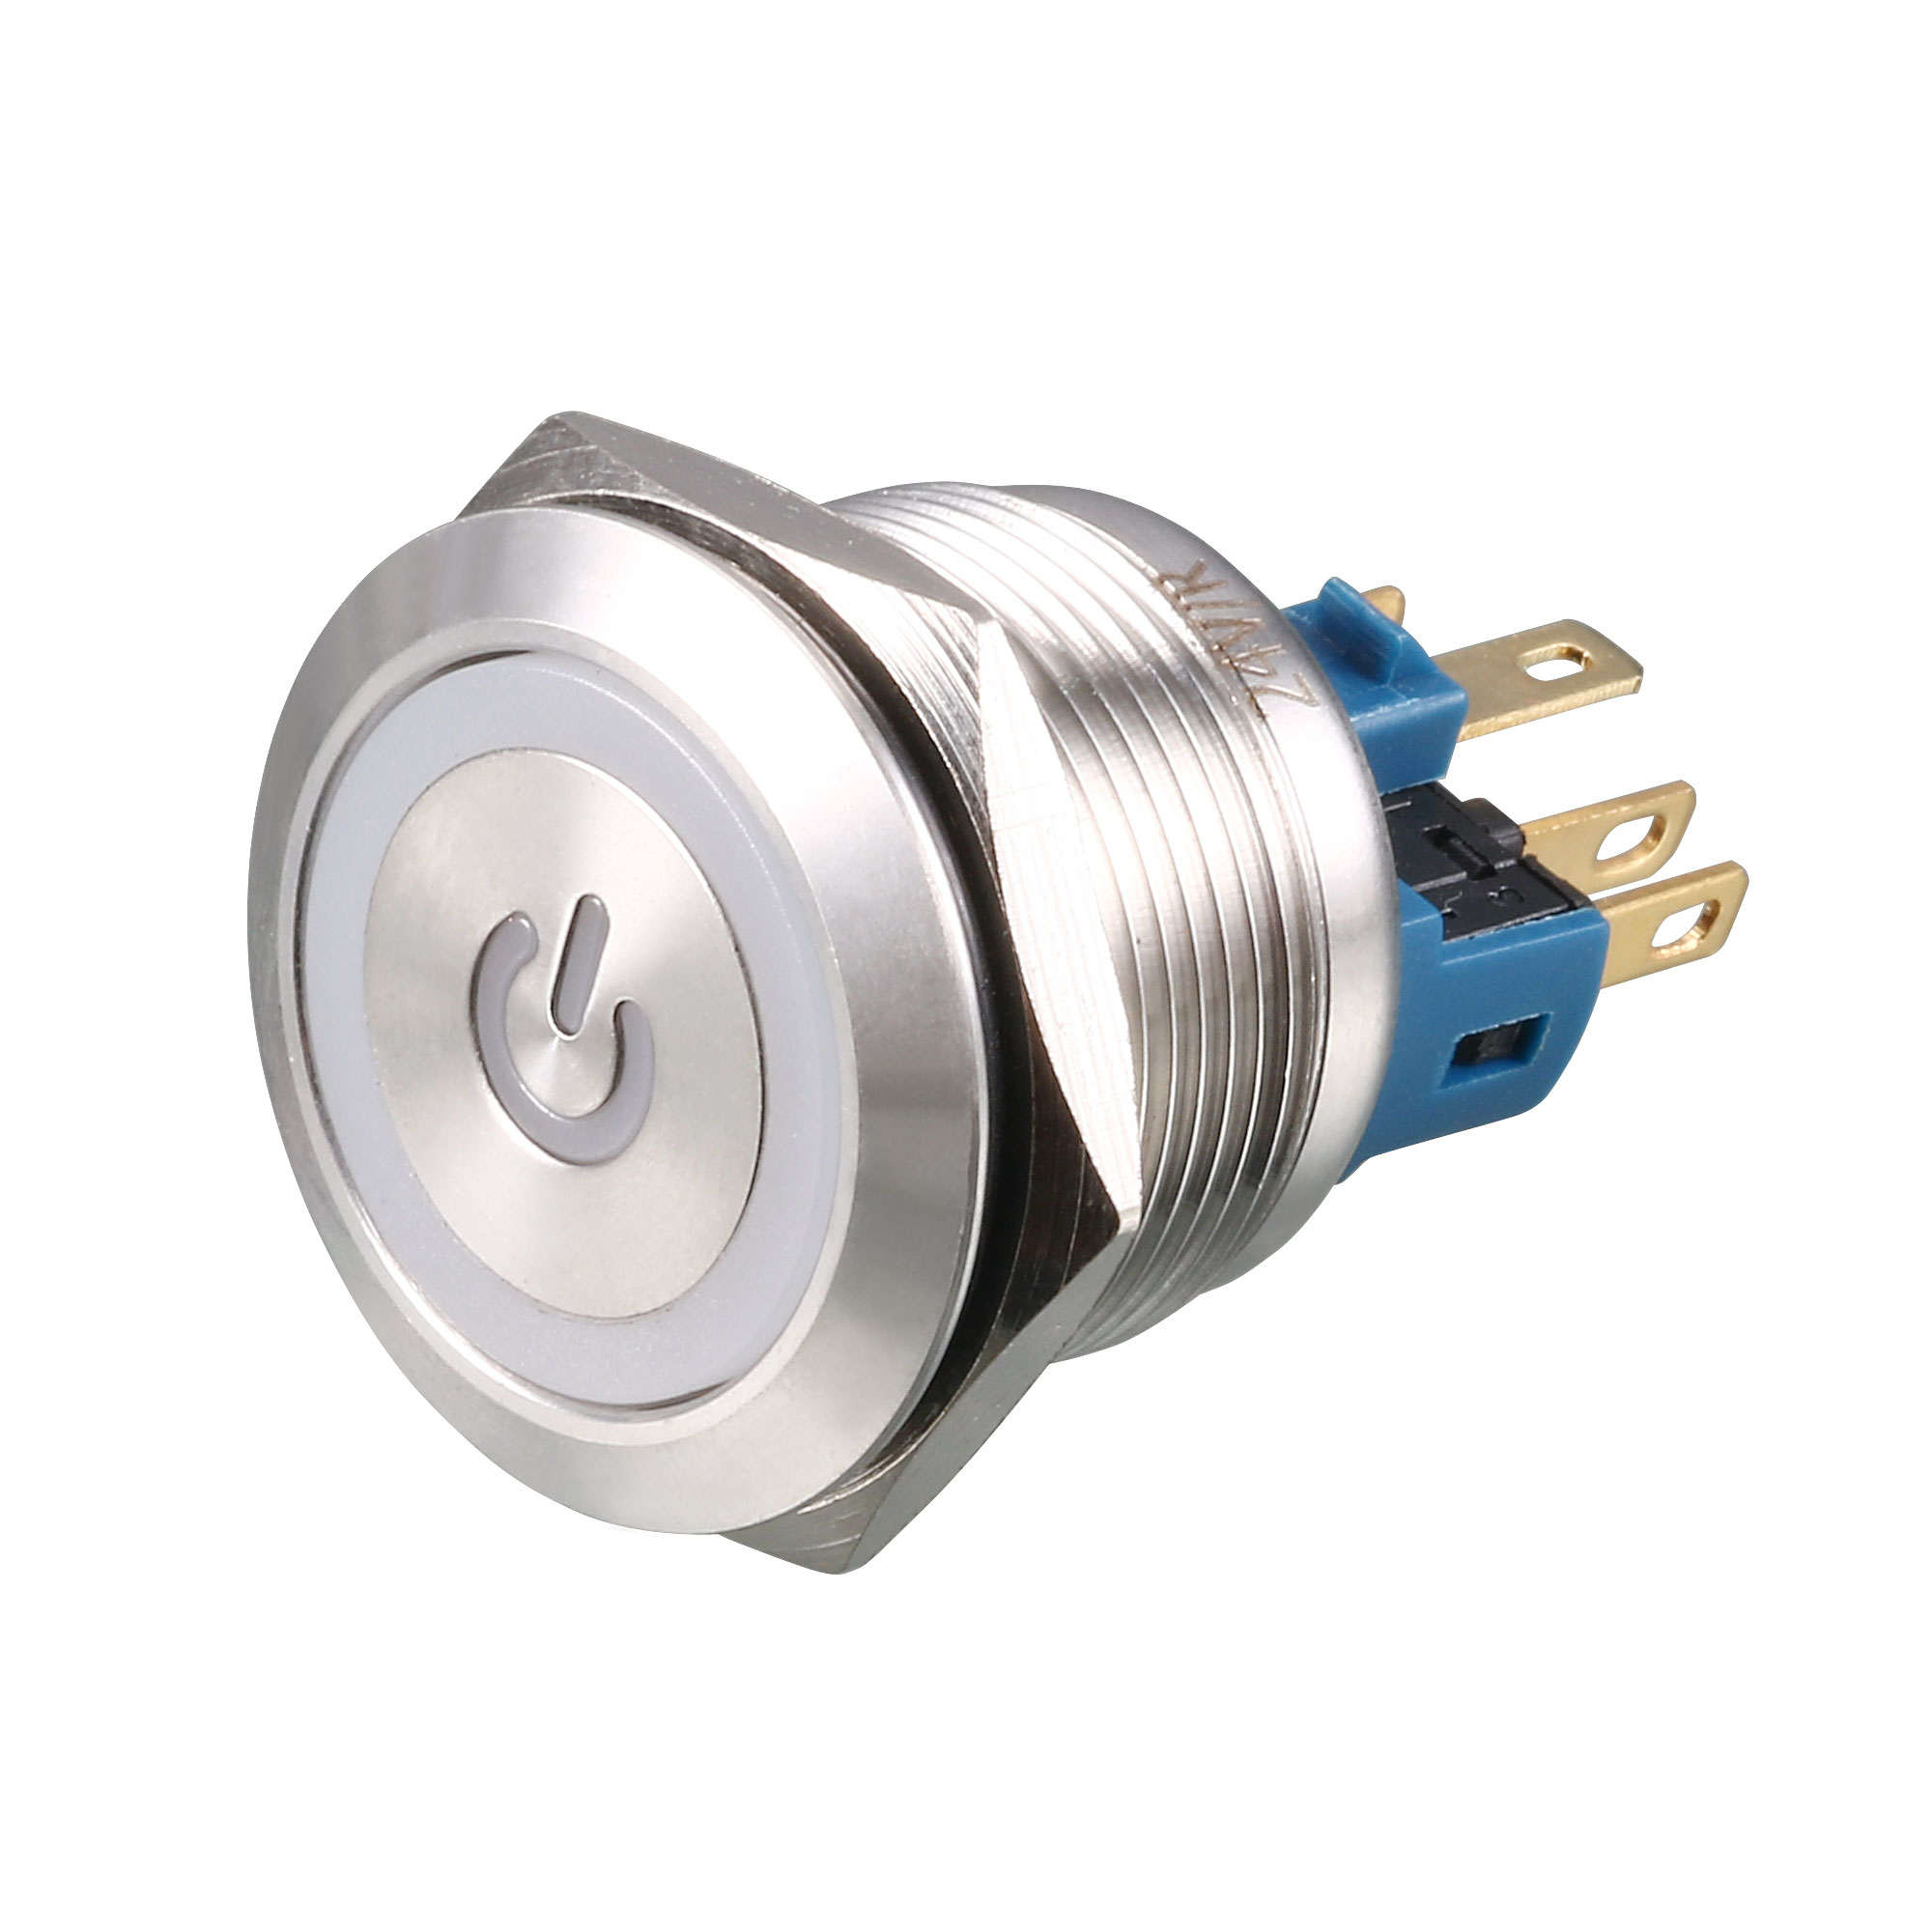 DC 24V 18mm Red LED Light 22mm Mounted Thread 6 Pins DPST ON/OFF Momentary Push Button Switch